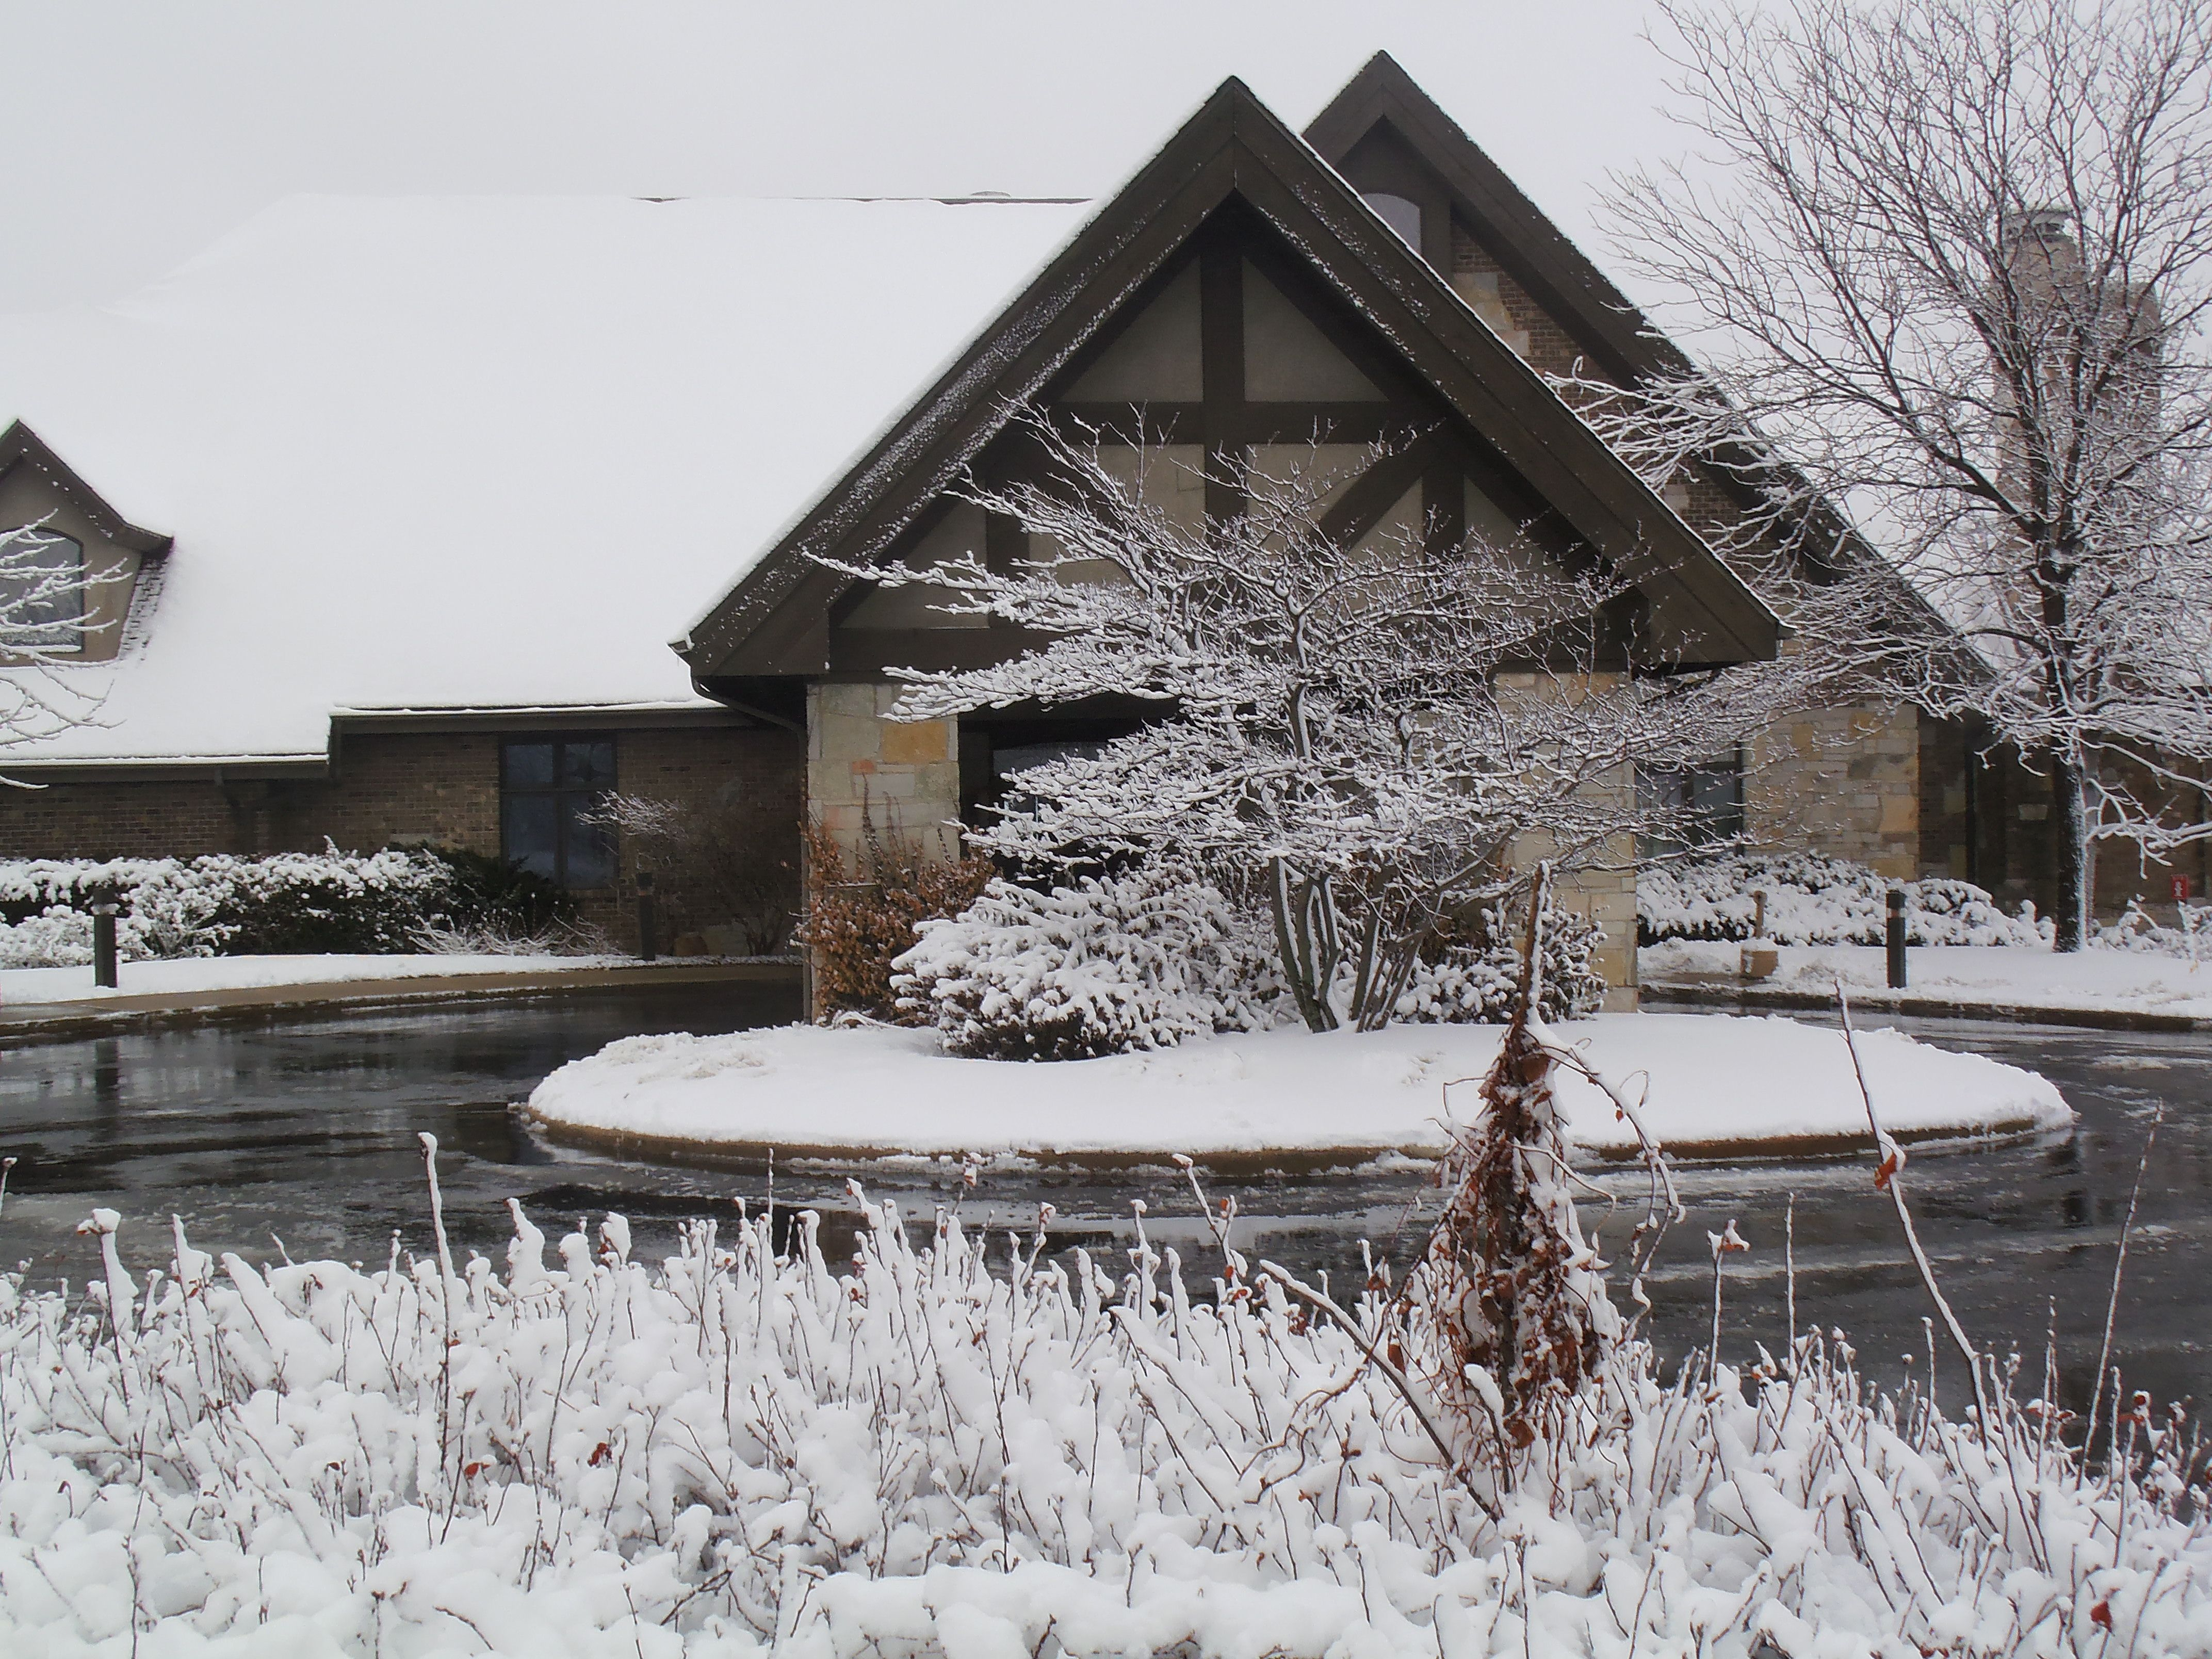 27+ Chicago golf courses open in winter information